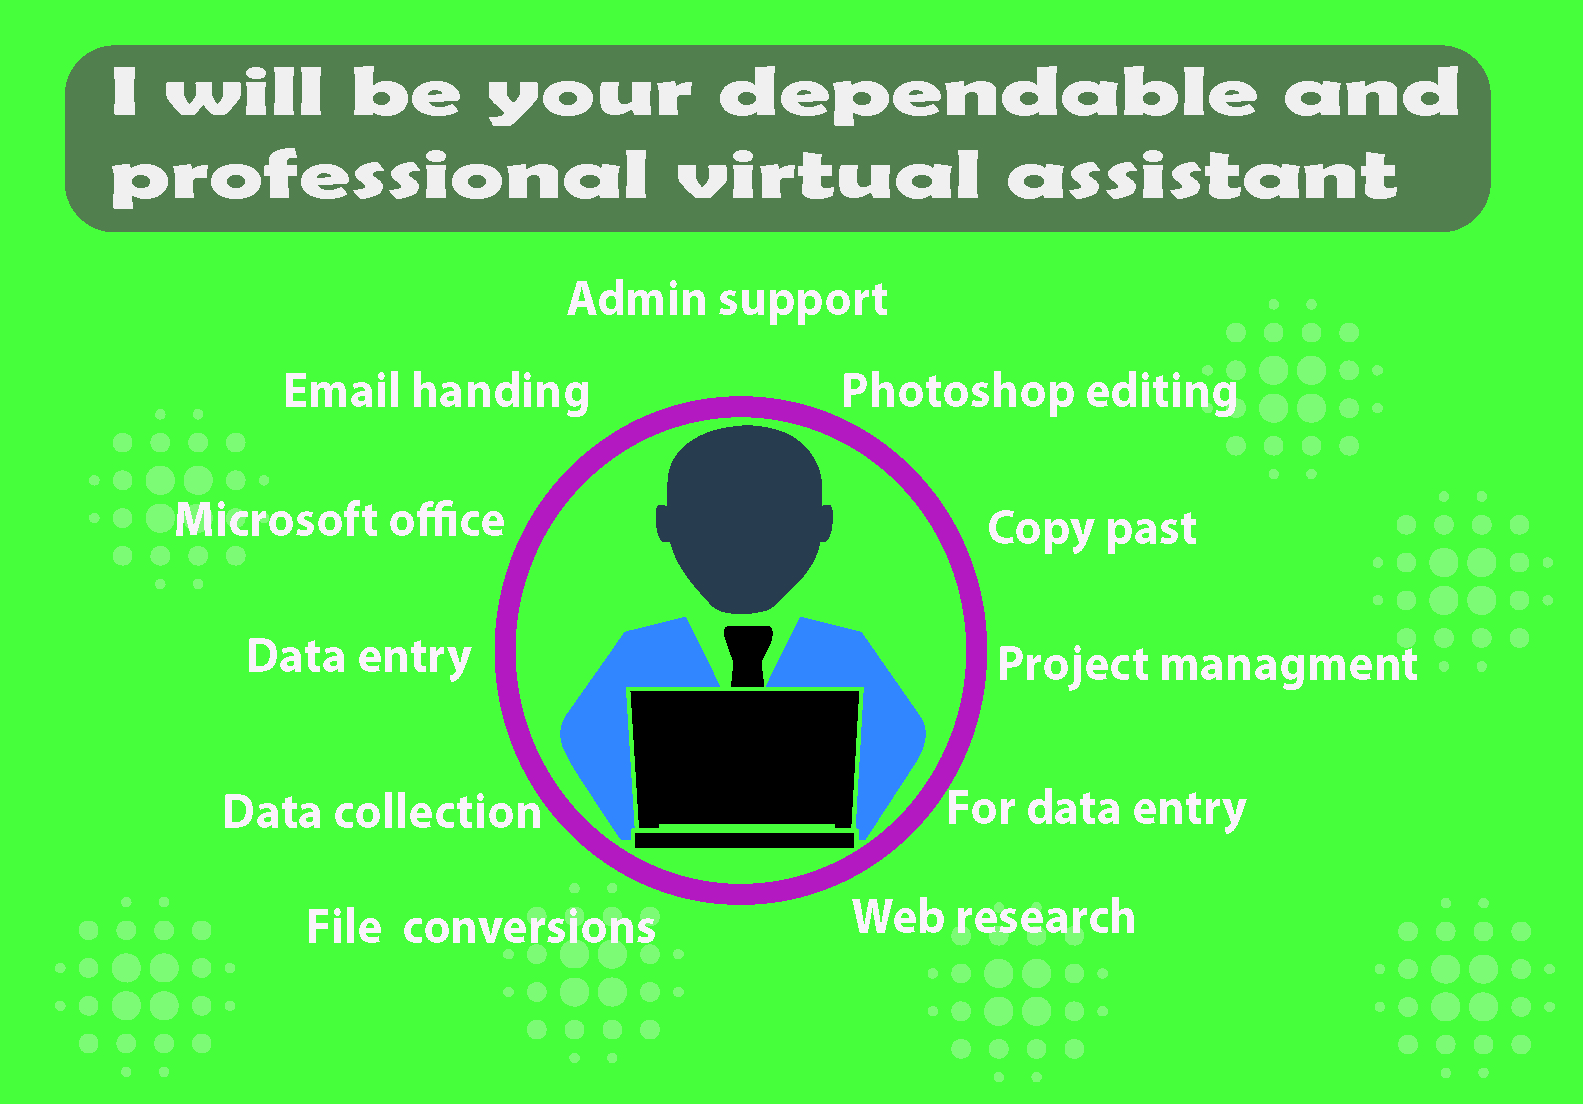 I will be your professional virtual assistant for any kinds of tasks